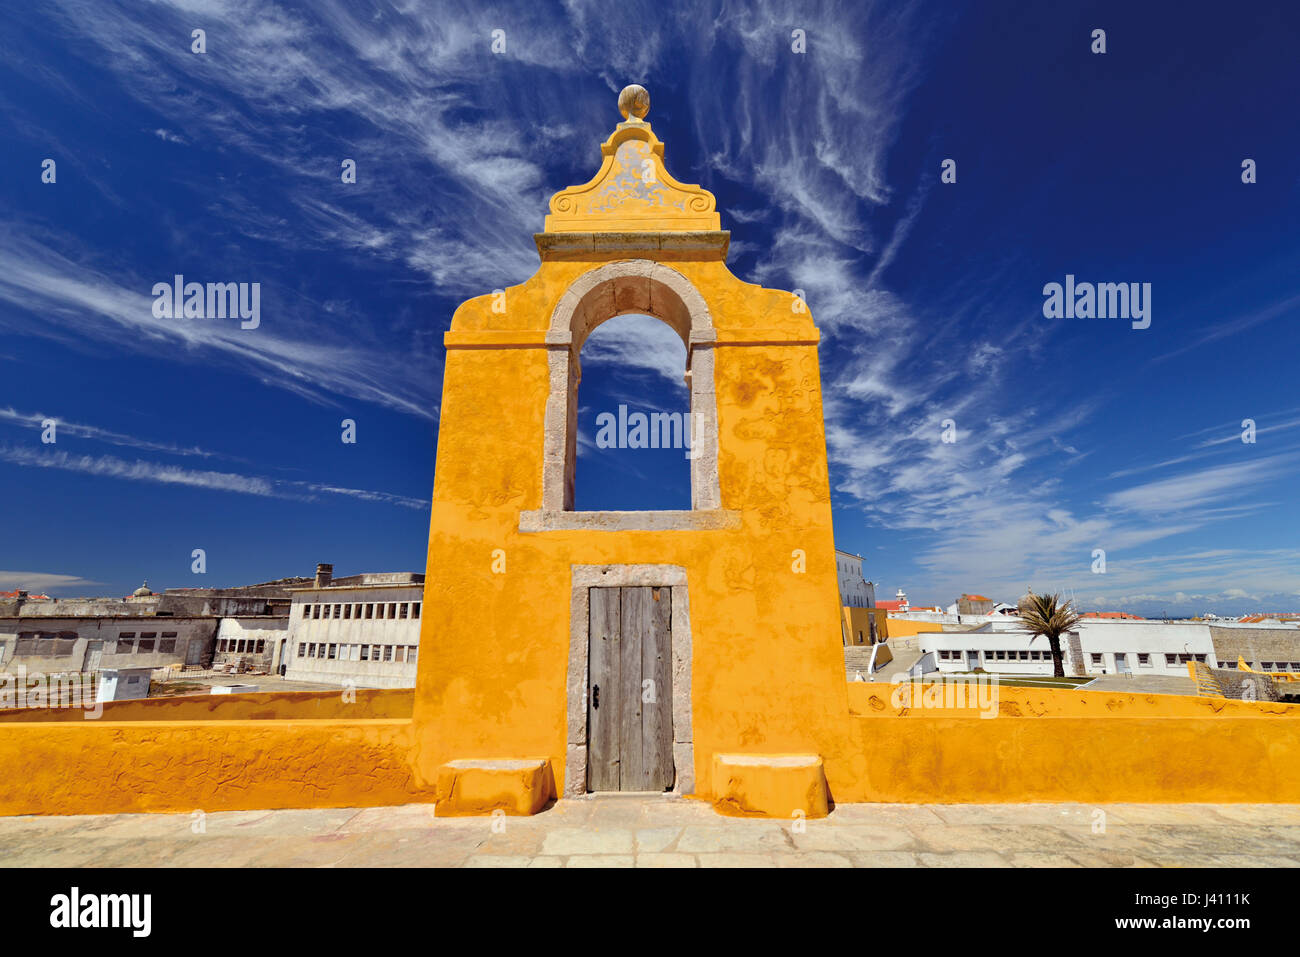 Portugal: Detail of historicFortaleza de Peniche  with former prision buildings in the background - Stock Image